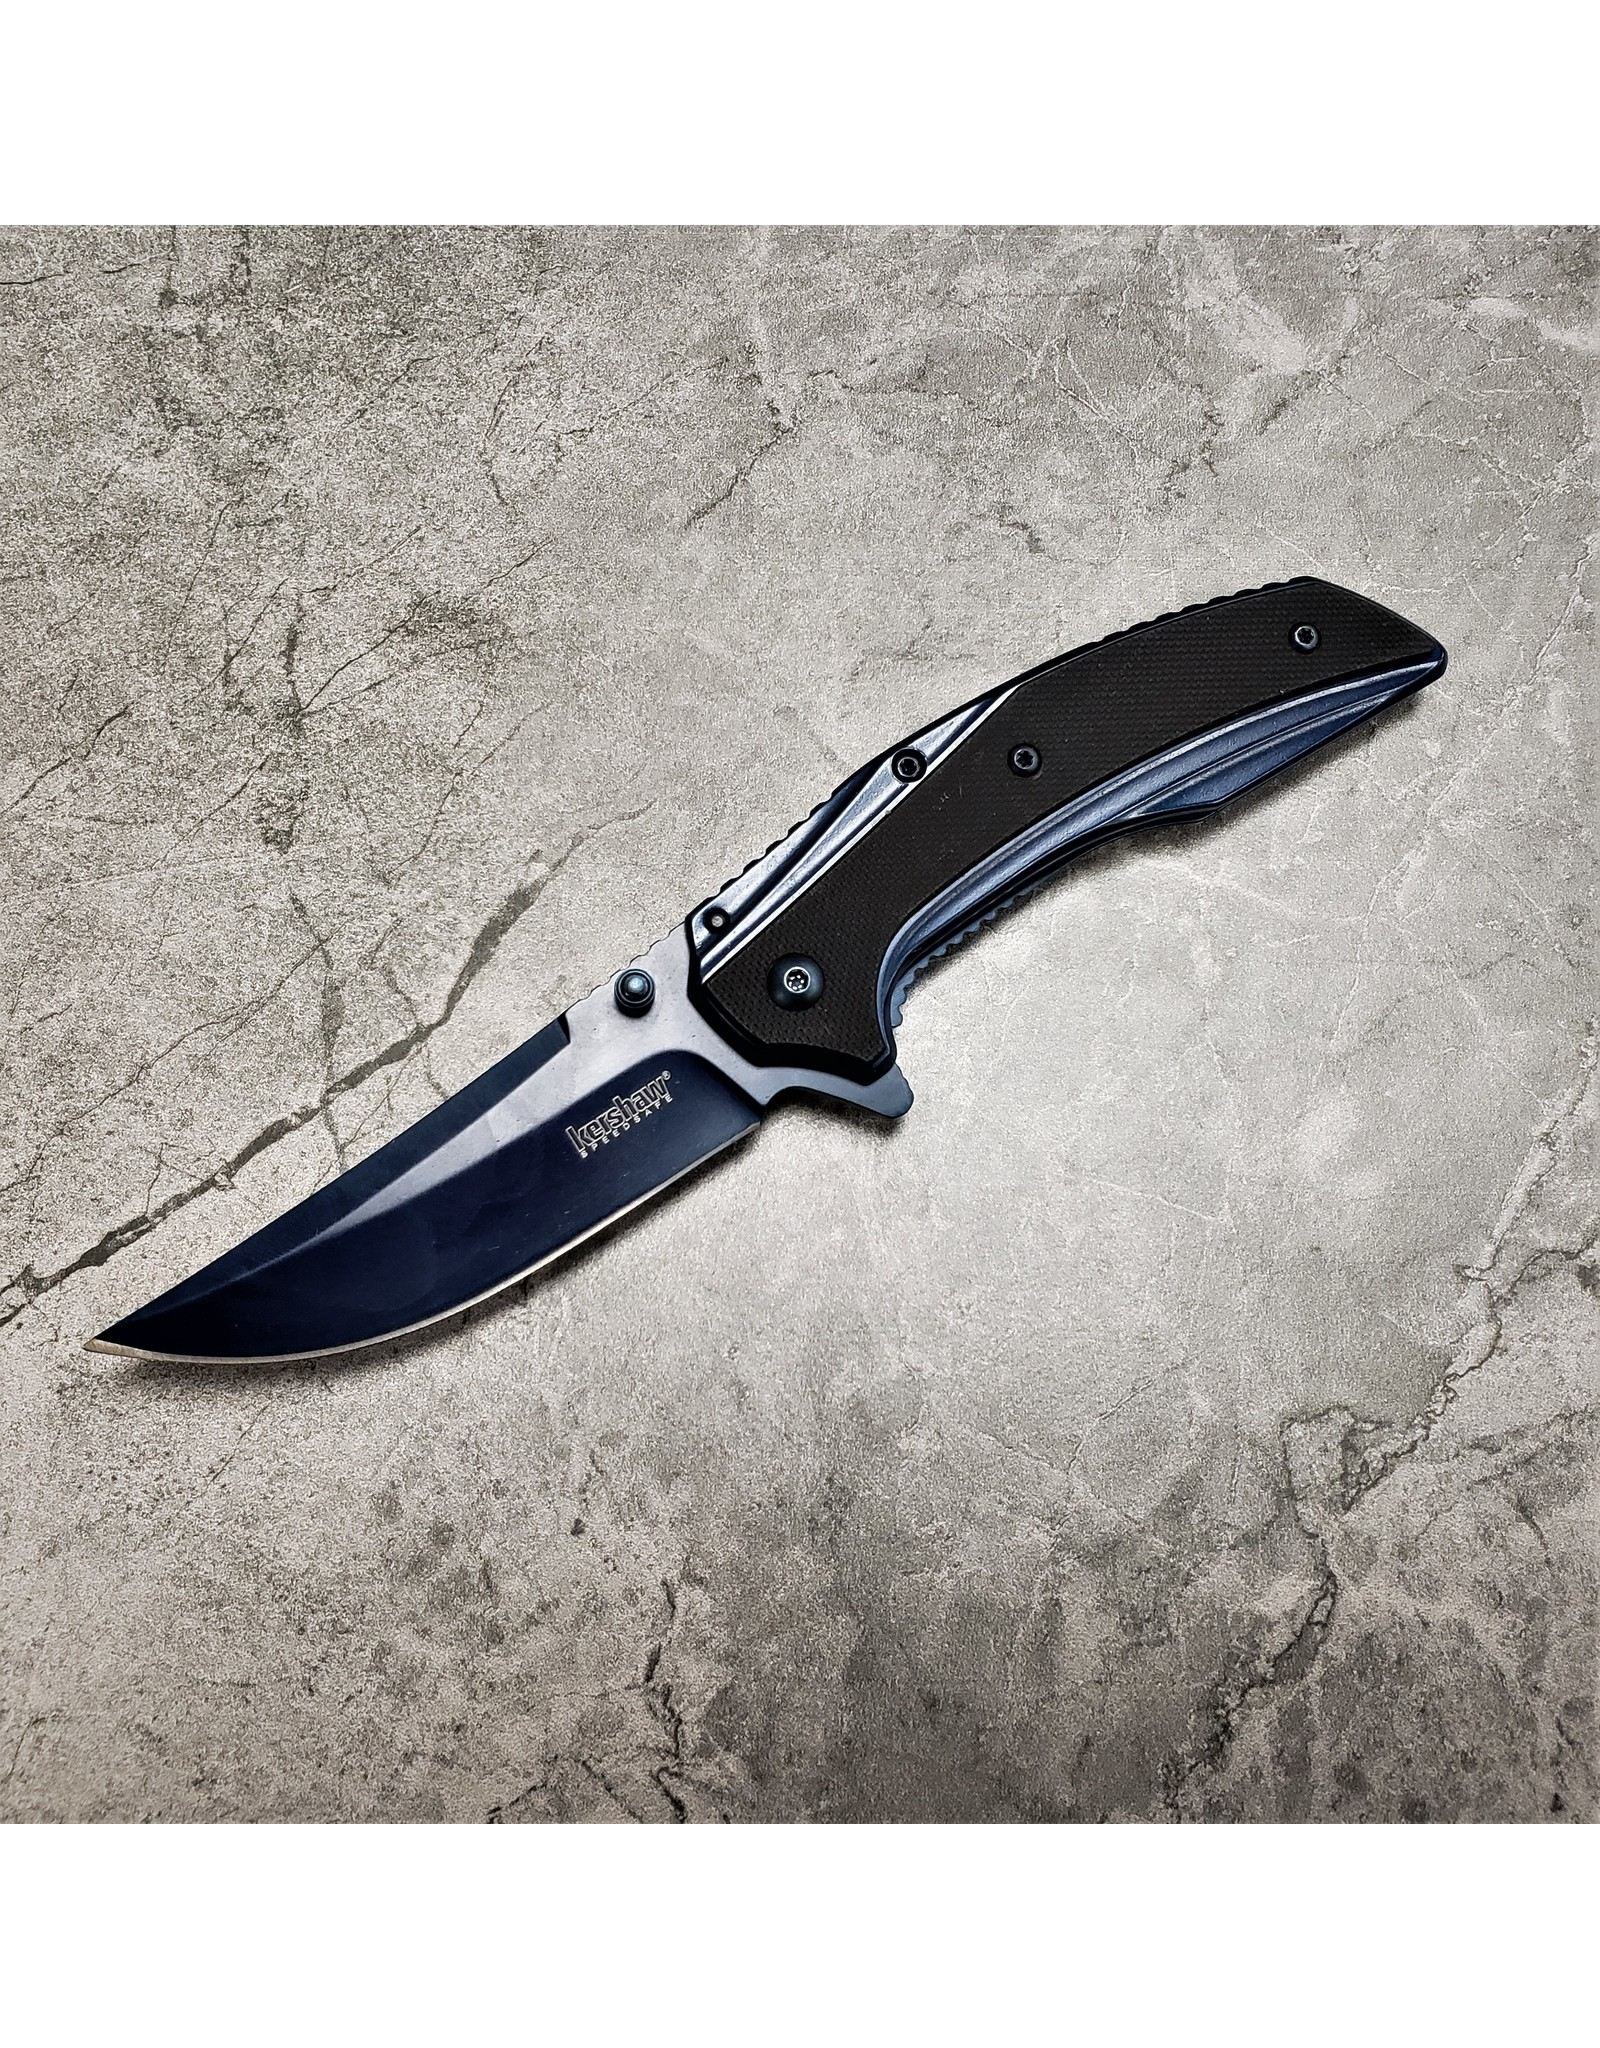 KERSHAW KNIVES OUTRIGHT FOLDING KNIFE